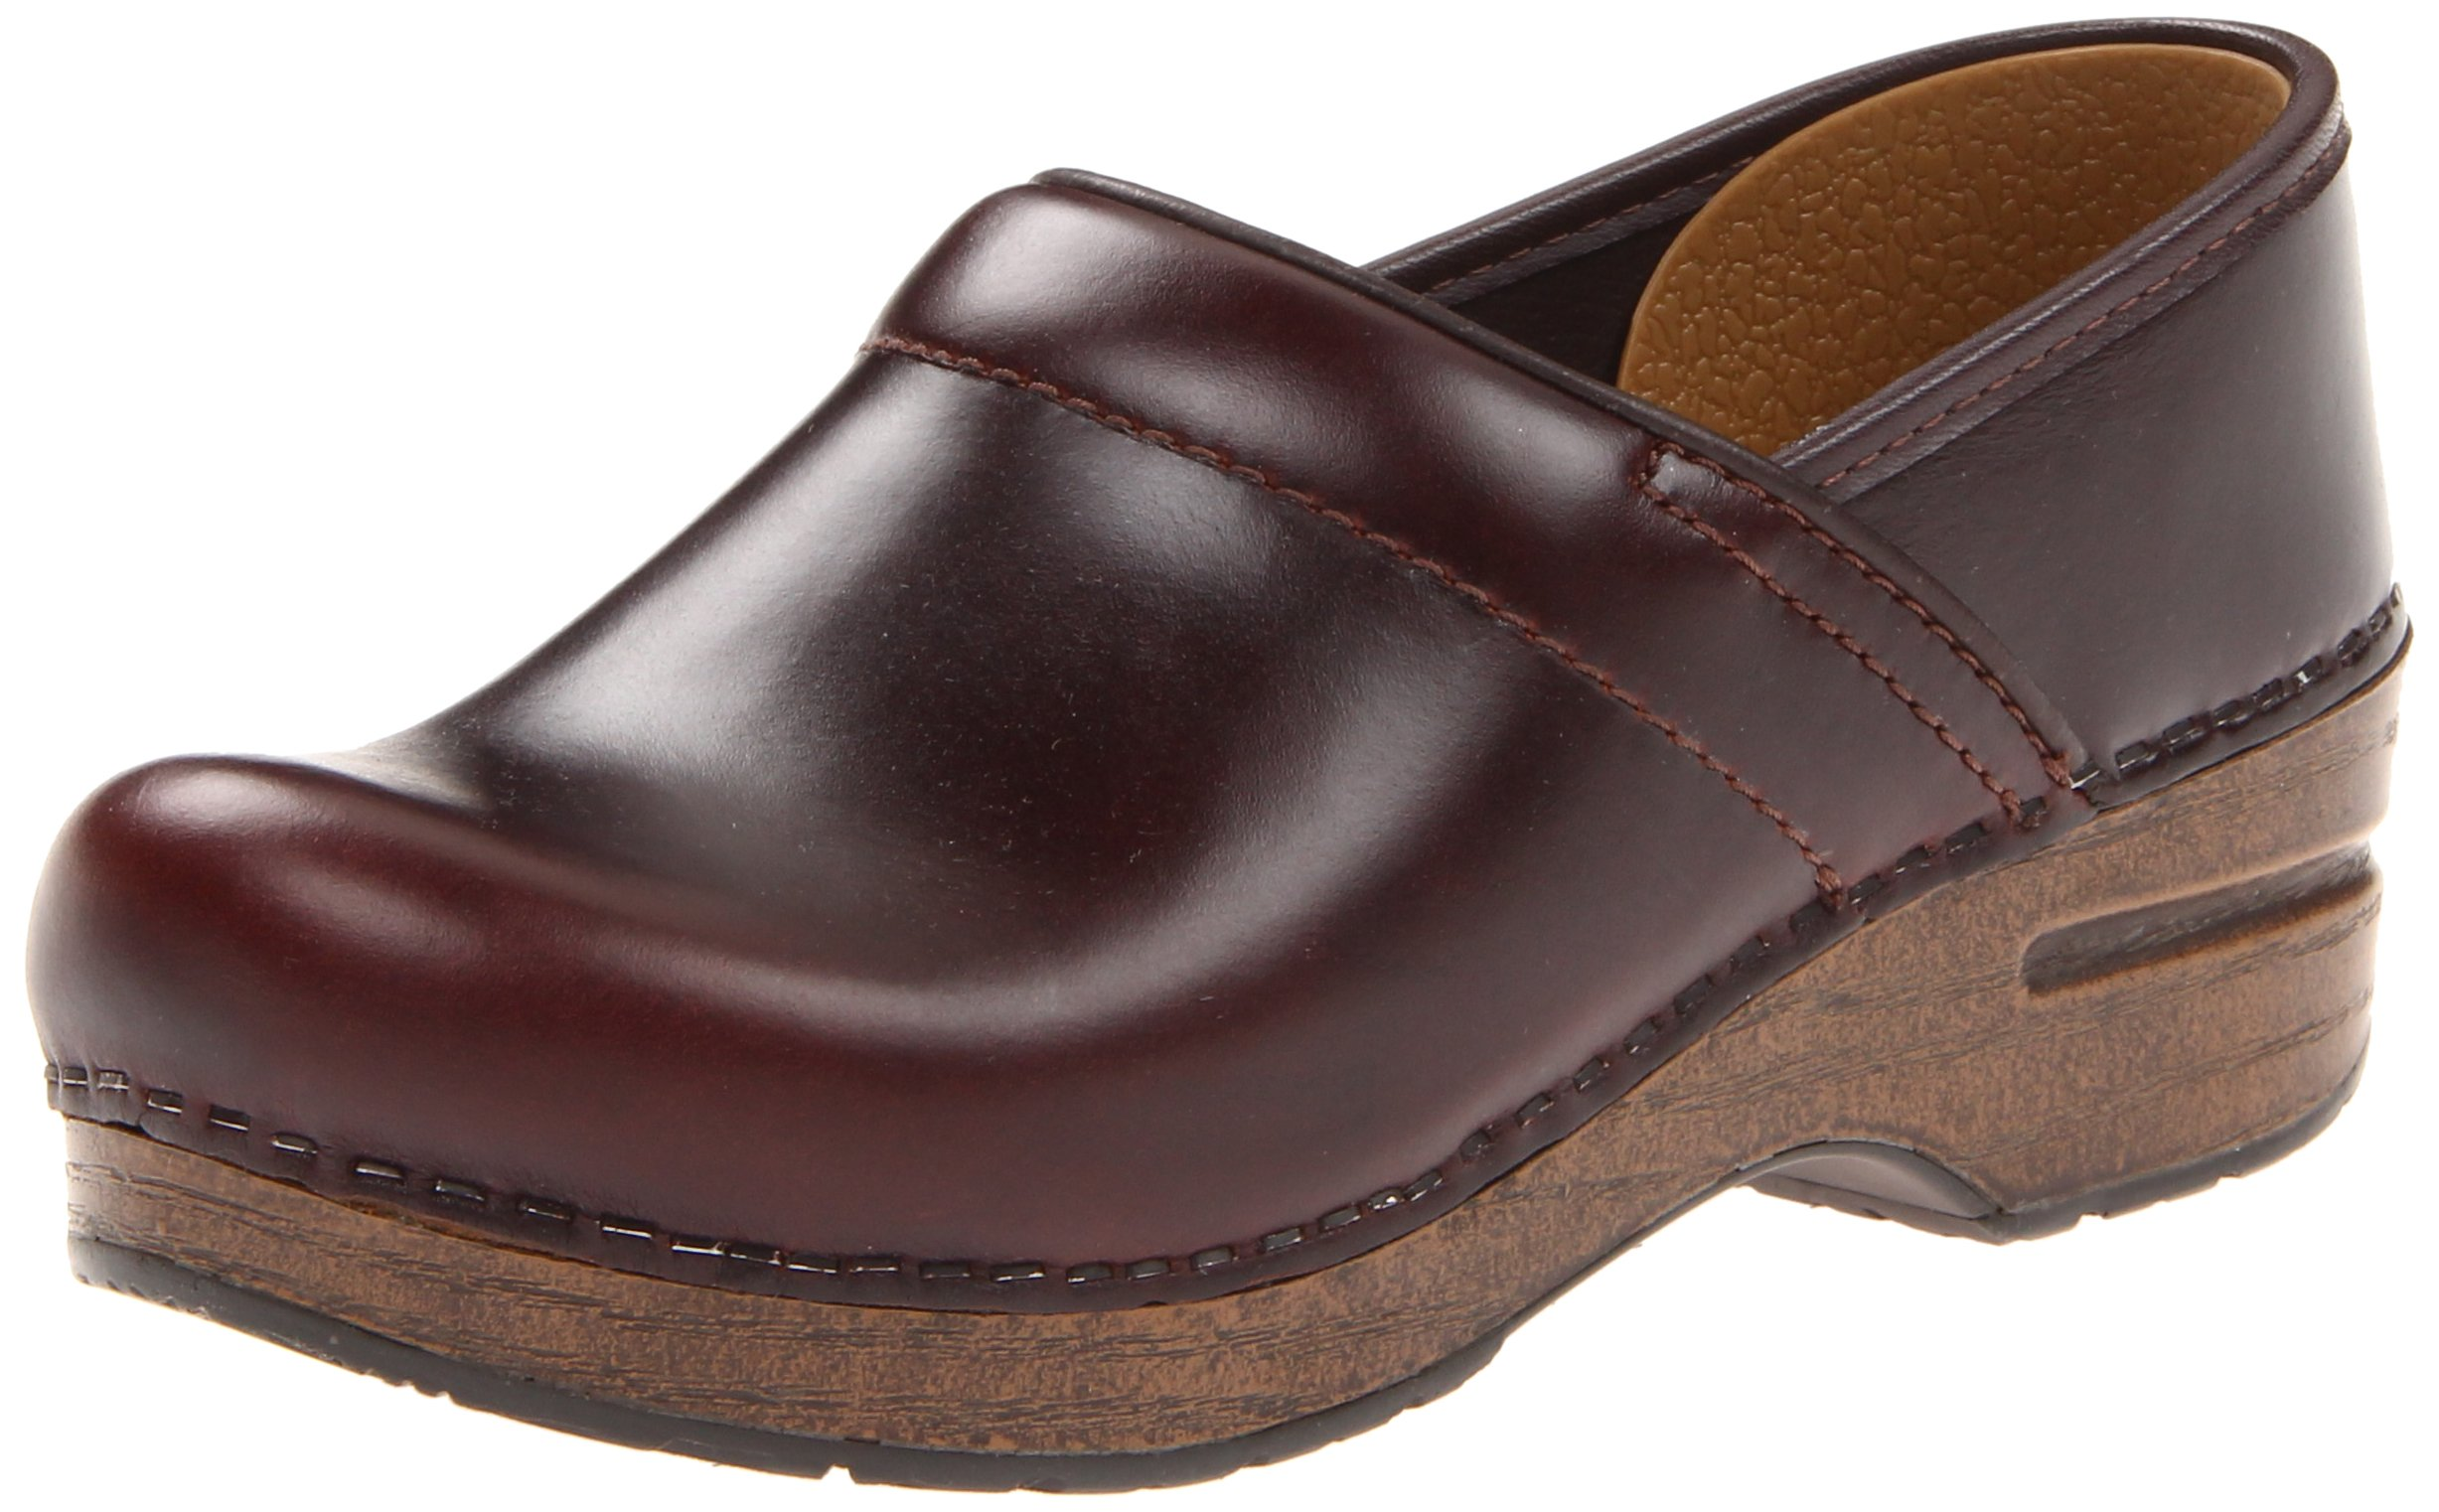 Dansko Unisex Professional Espresso Oiled Full Grain Clog/Mule 42 (US Men's 8.5-9, US Women's 11.5-12) Regular